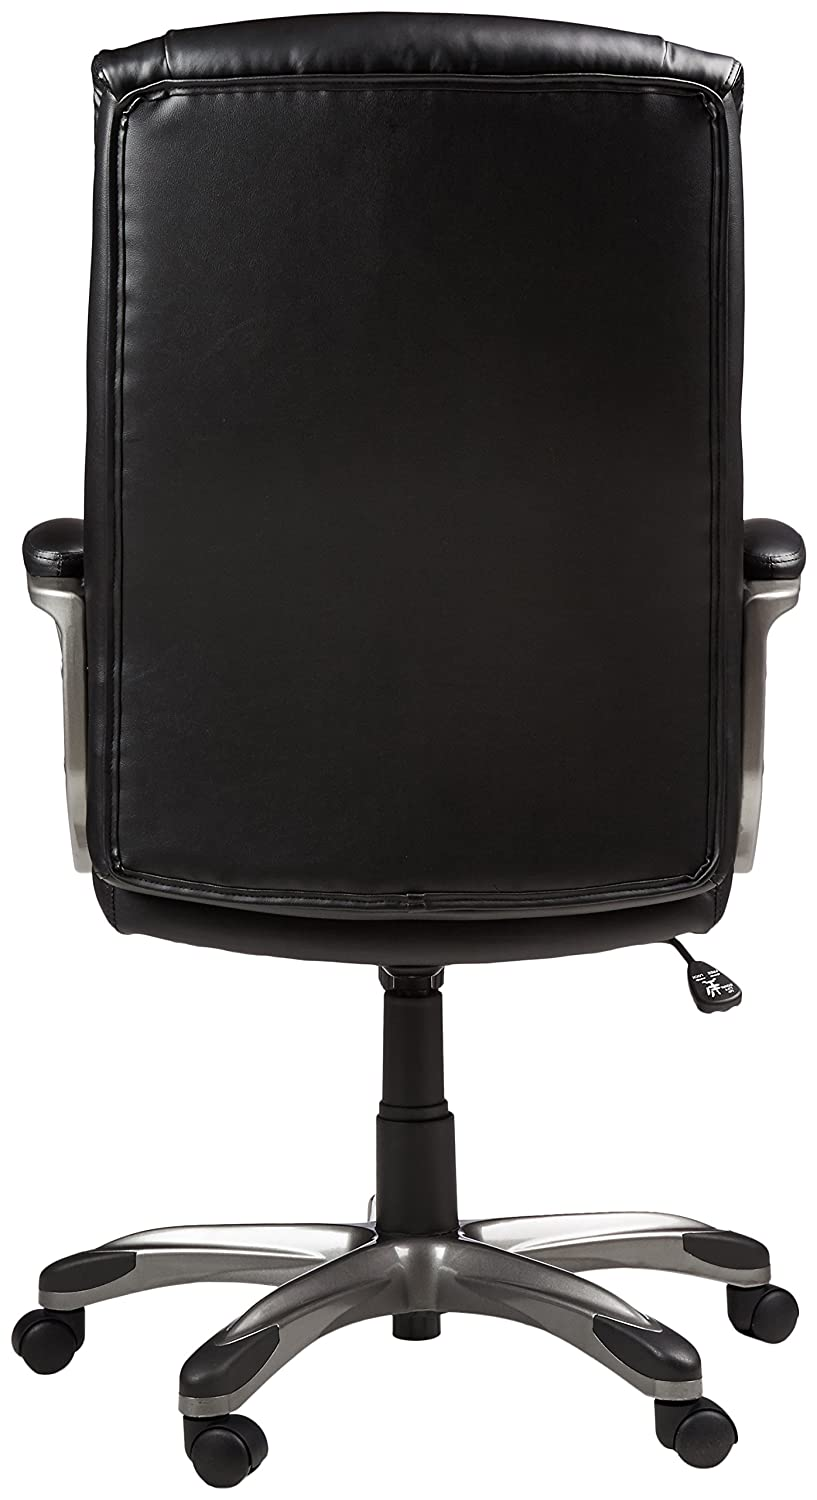 Amazon.com: AmazonBasics High-Back Executive Chair - Black: Kitchen on black office telephone, black accent chair, black office man, black designer chair, black fabric folding chair, black lift chair, high back executive leather desk chair, black couch chair, black lounge chair, black womb chair, black storage chair, black diamond chair, black and white office background, black lounging chair, black camp chair, computer chair, black oriental chair, black game chair, black studio chair, black easy chair,